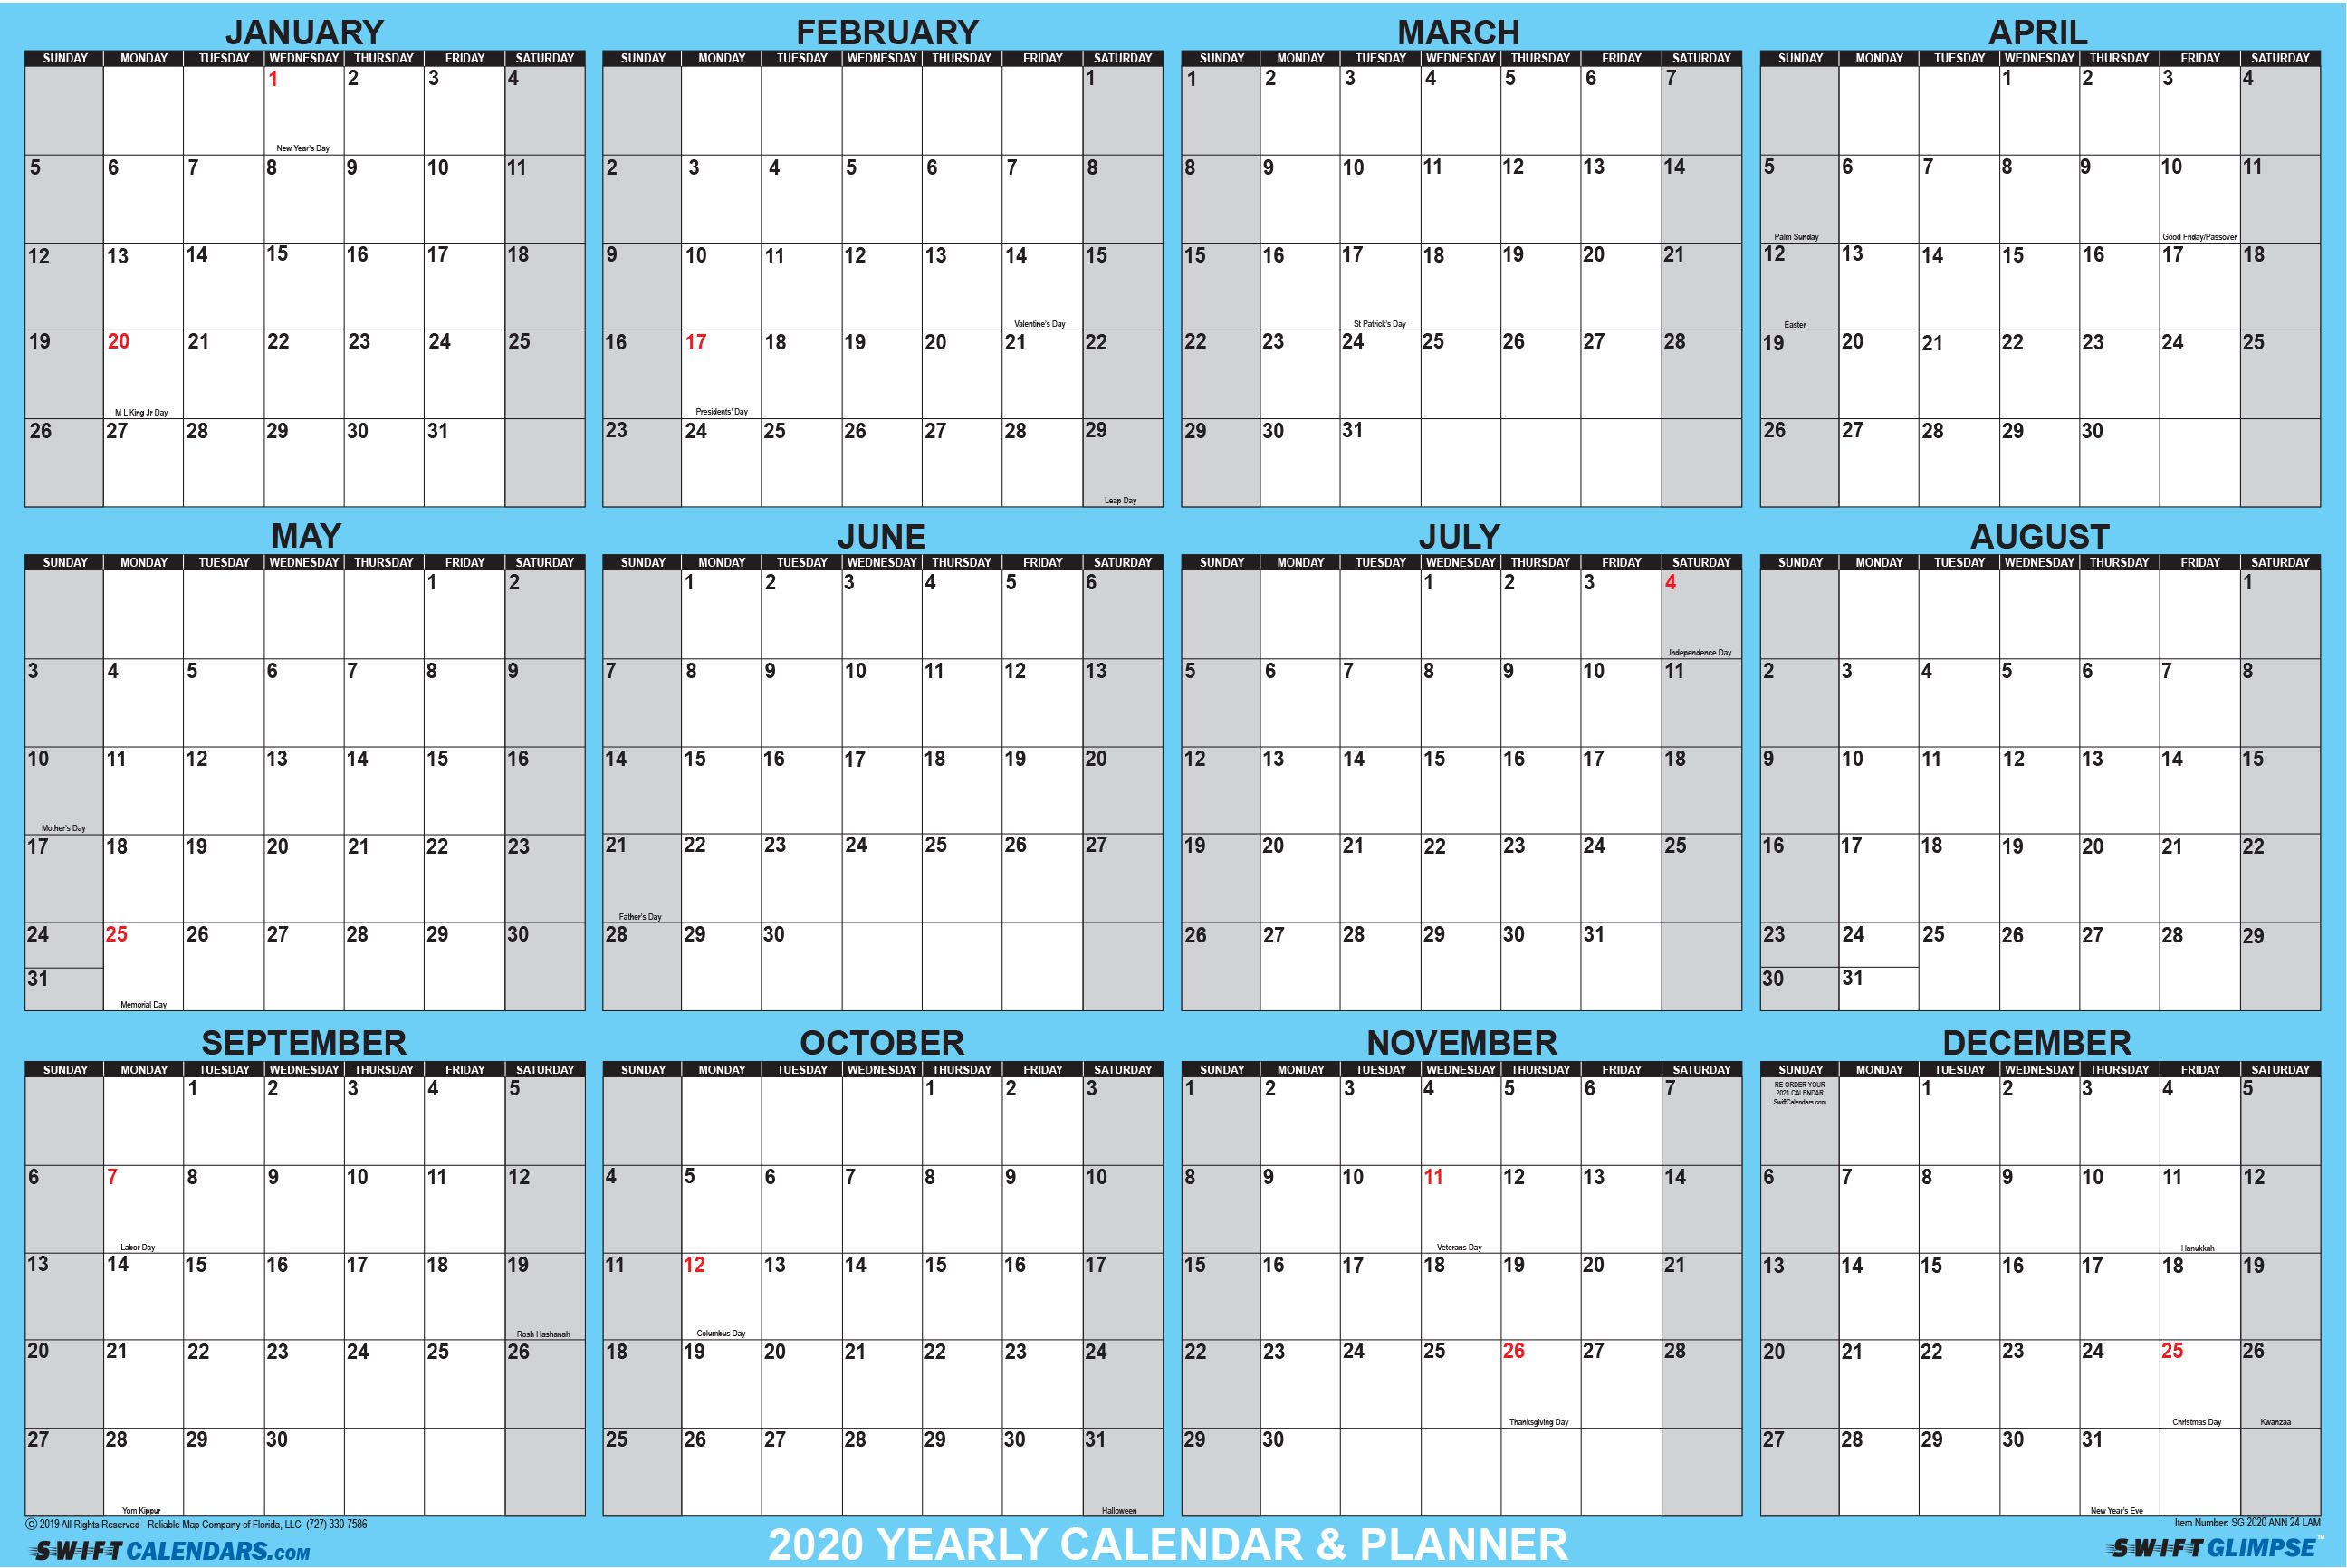 Swiftglimpse 2020 Dry Erase Wall Calendar Planner with regard to 2020 Calender With Space To Write